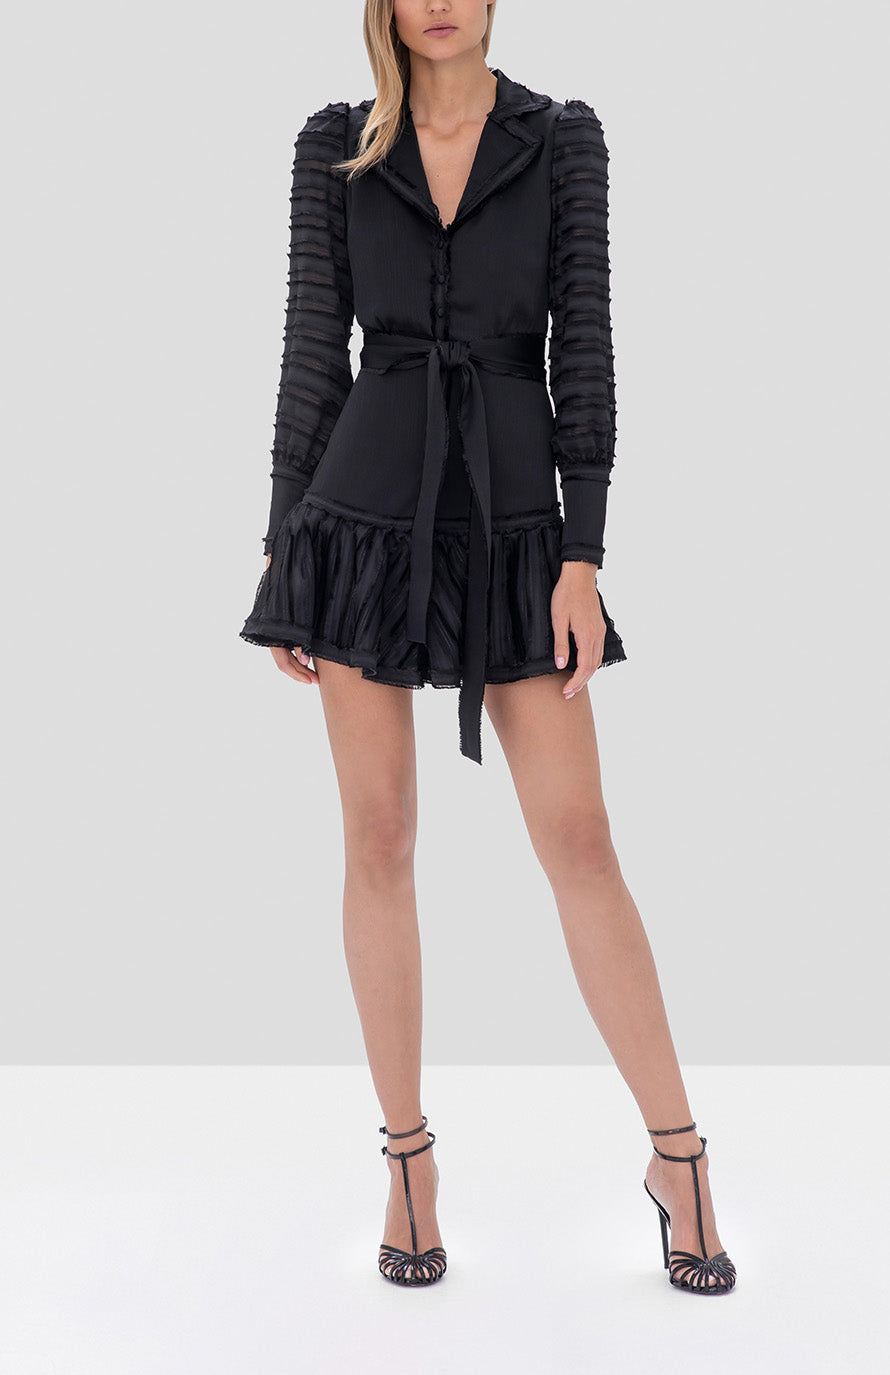 Alexis Renita Dress in Black from the Fall Winter 2019 Ready To Wear Collection - Rear View